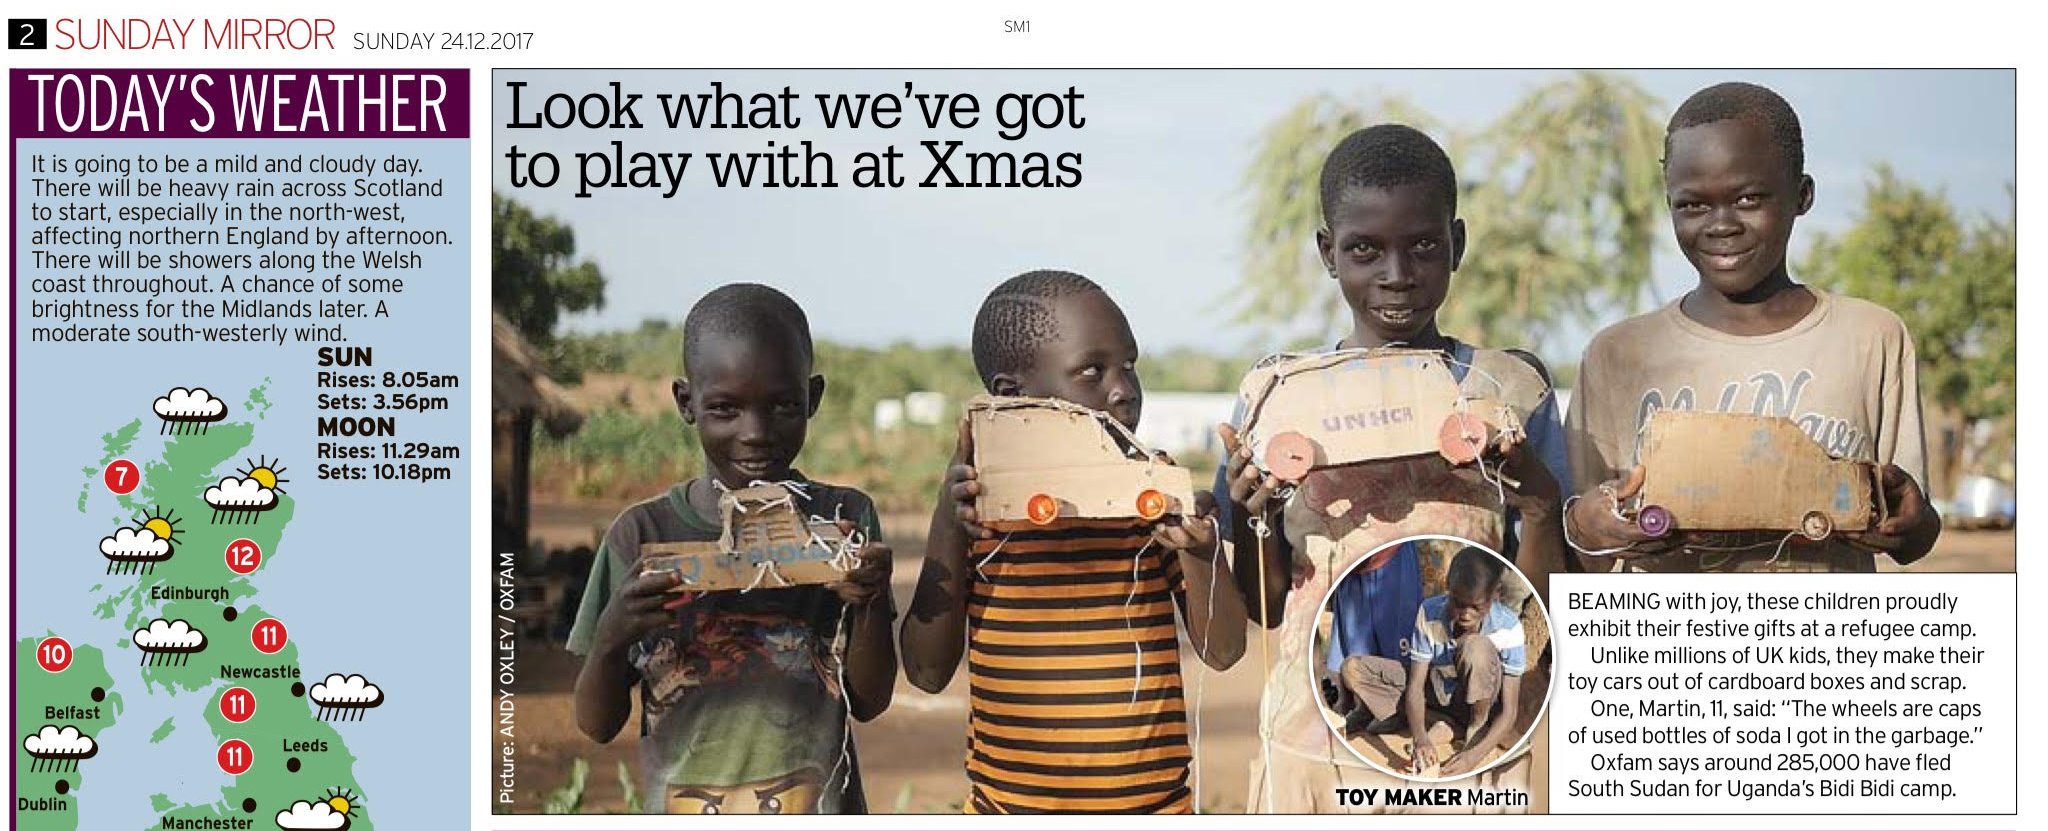 Sunday Mirror - Our film shot in Uganda for Oxfam was published by the Sunday Mirror.